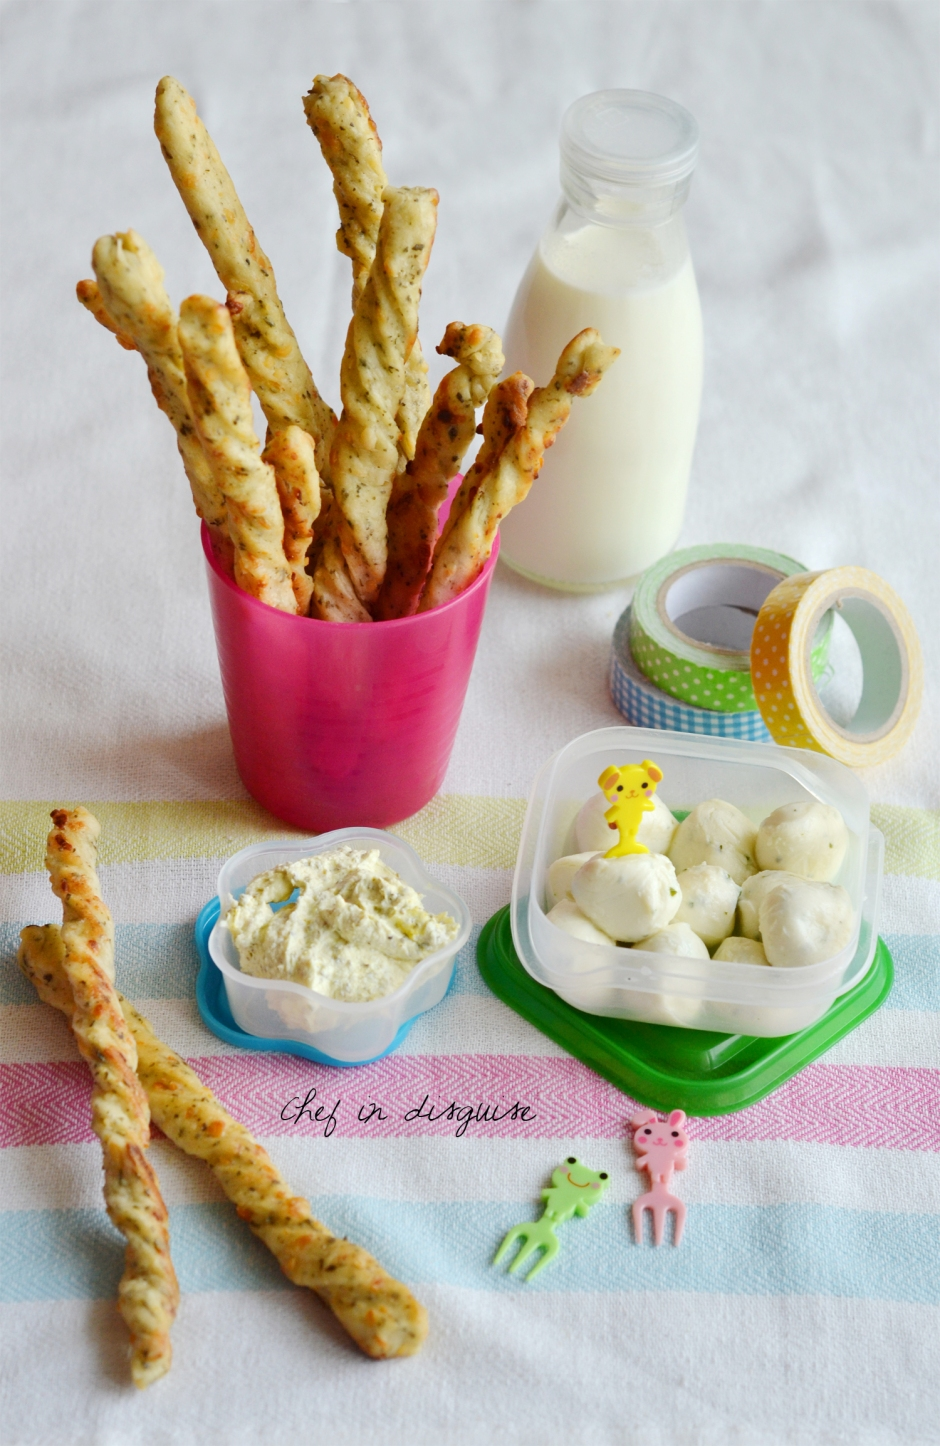 Cheese and zaatar sticks